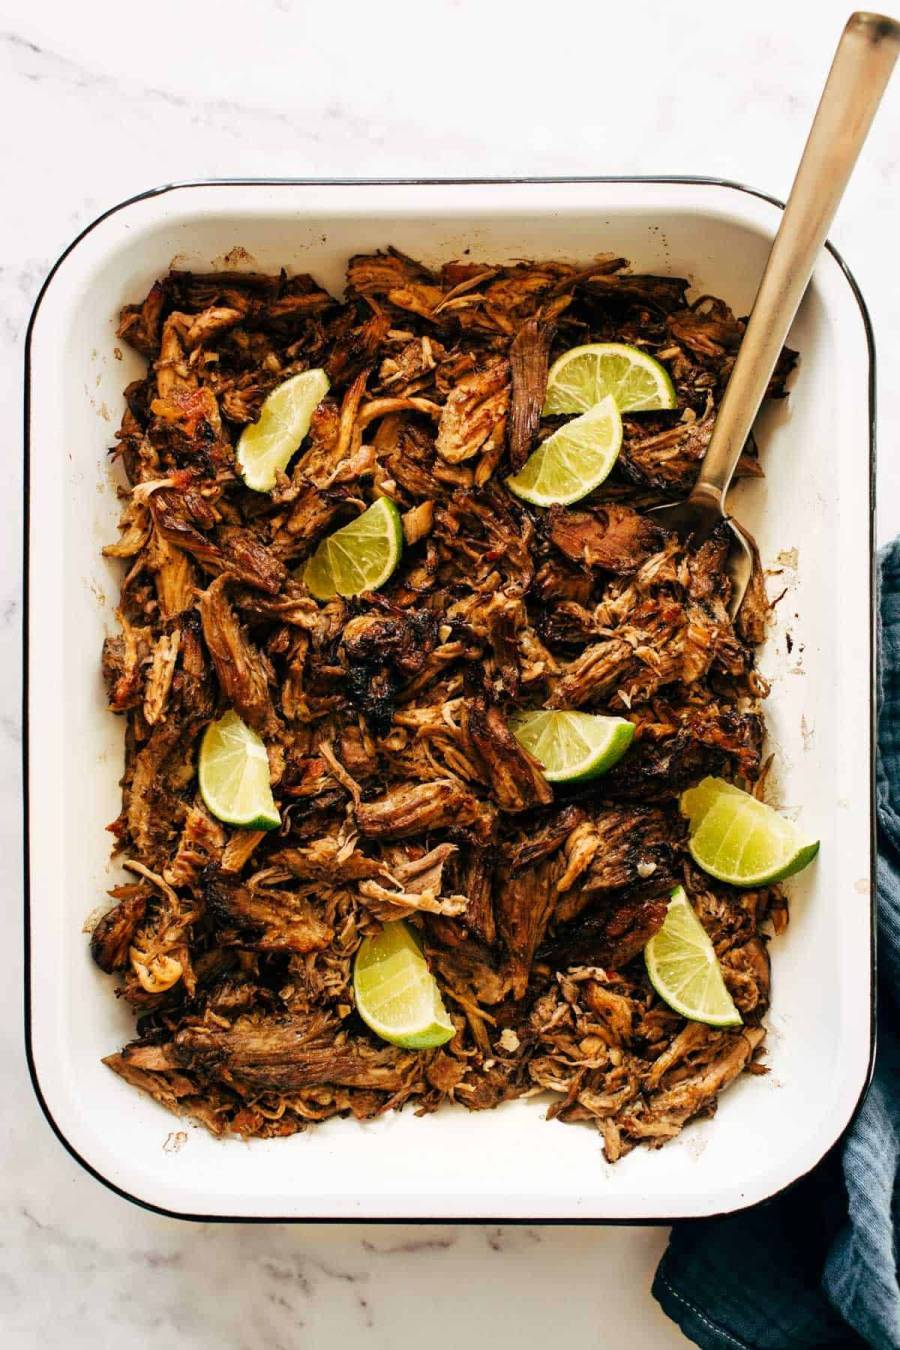 Carnitas in a pan with limes and a serving fork.